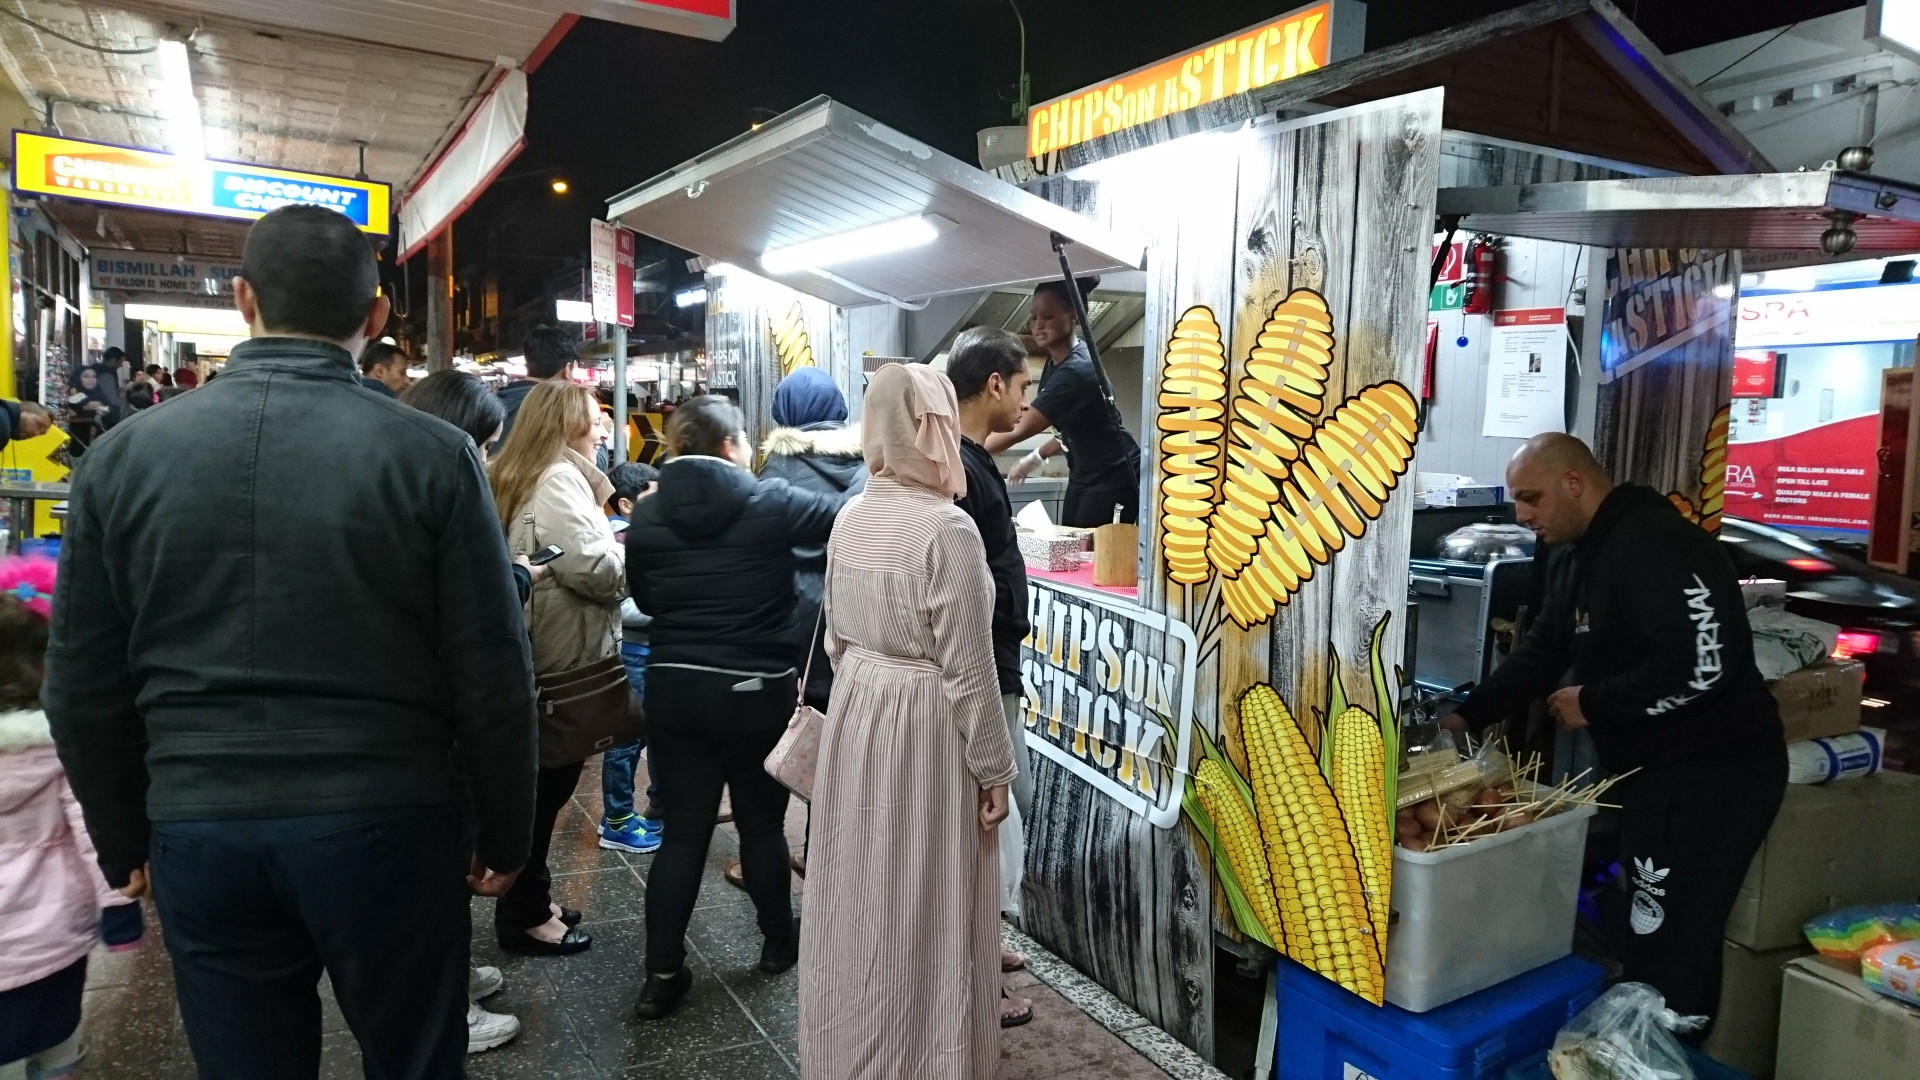 Another stall selling chips on a stick